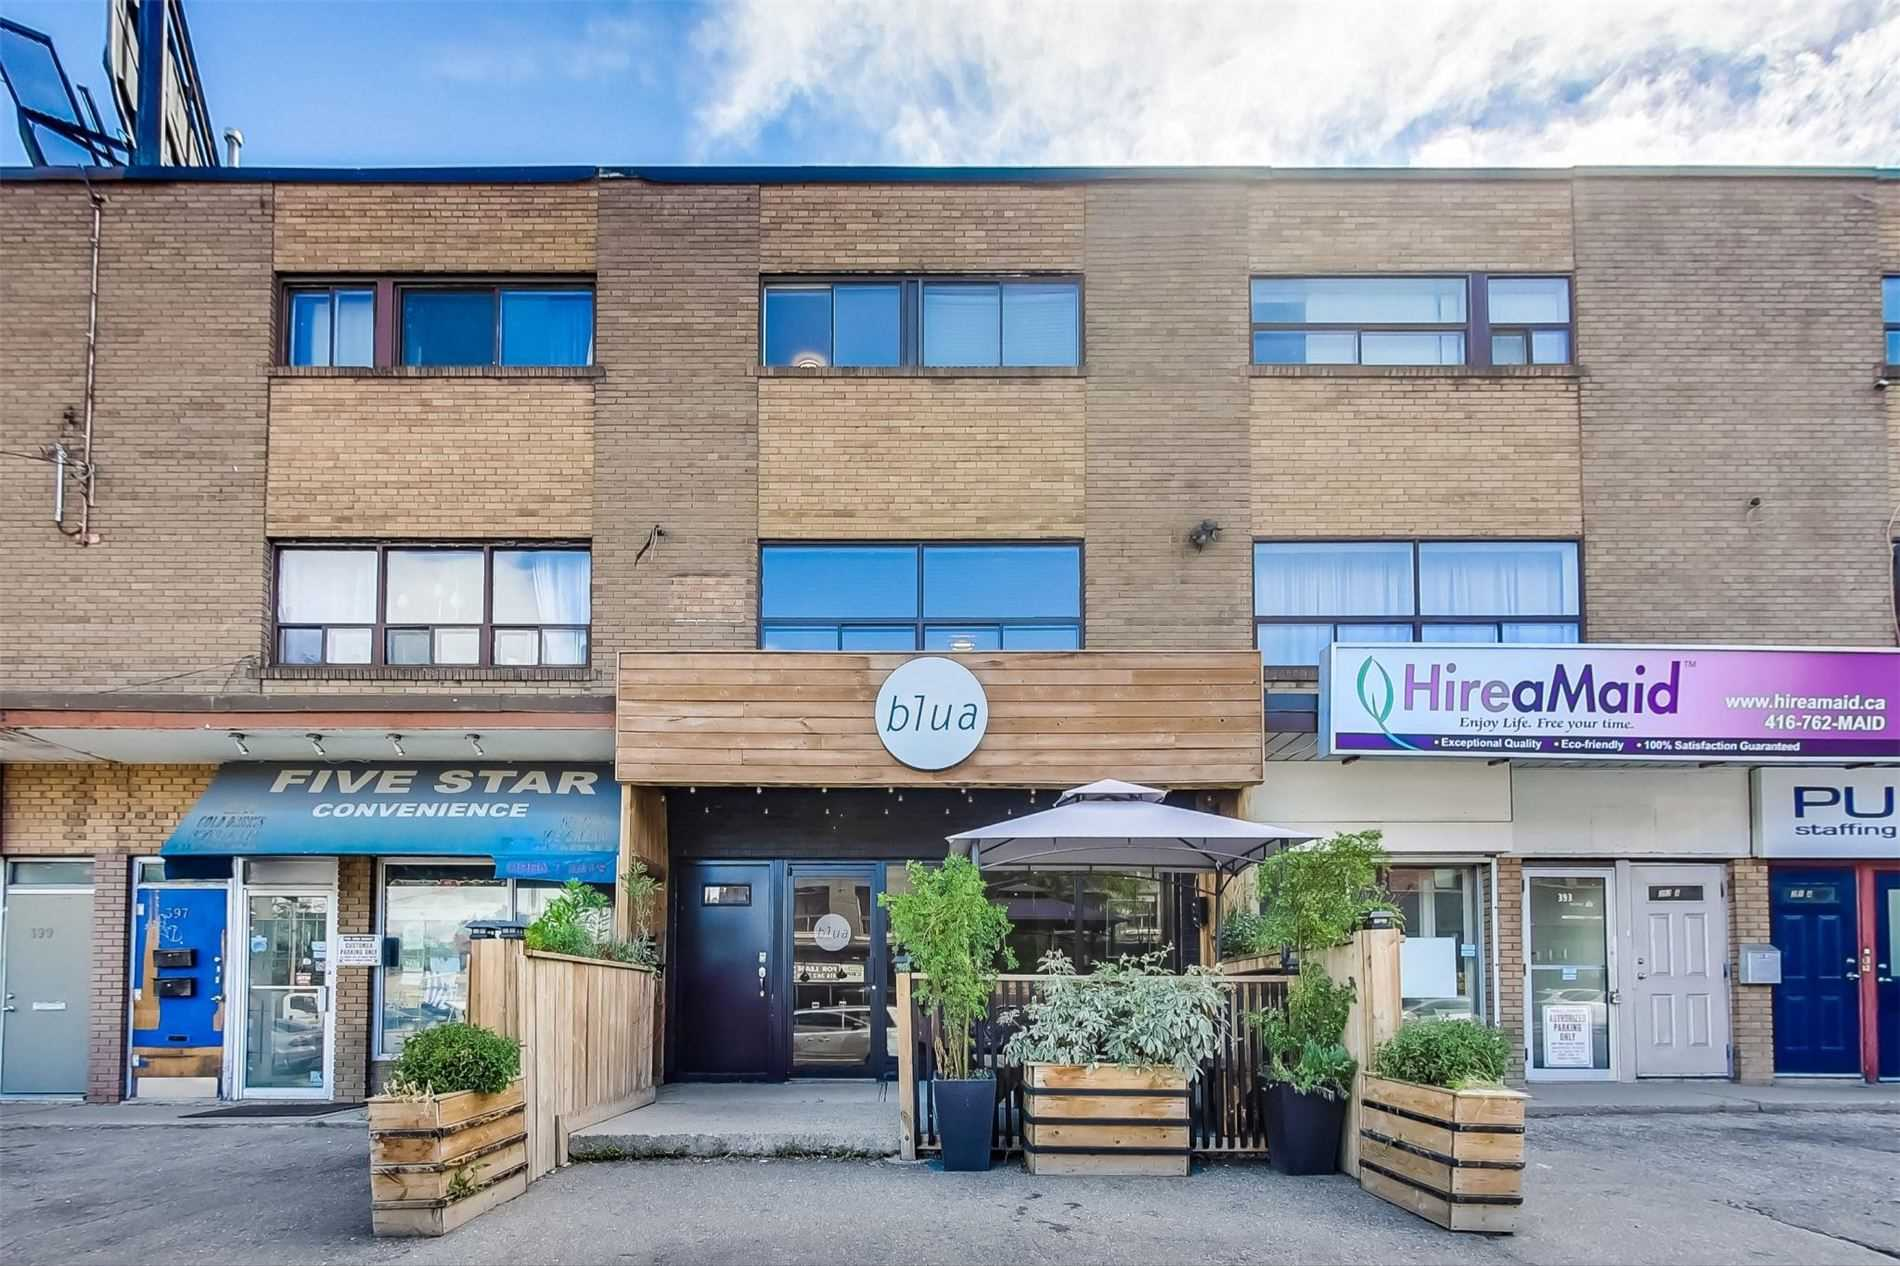 Commercial/retail For Sale In Toronto